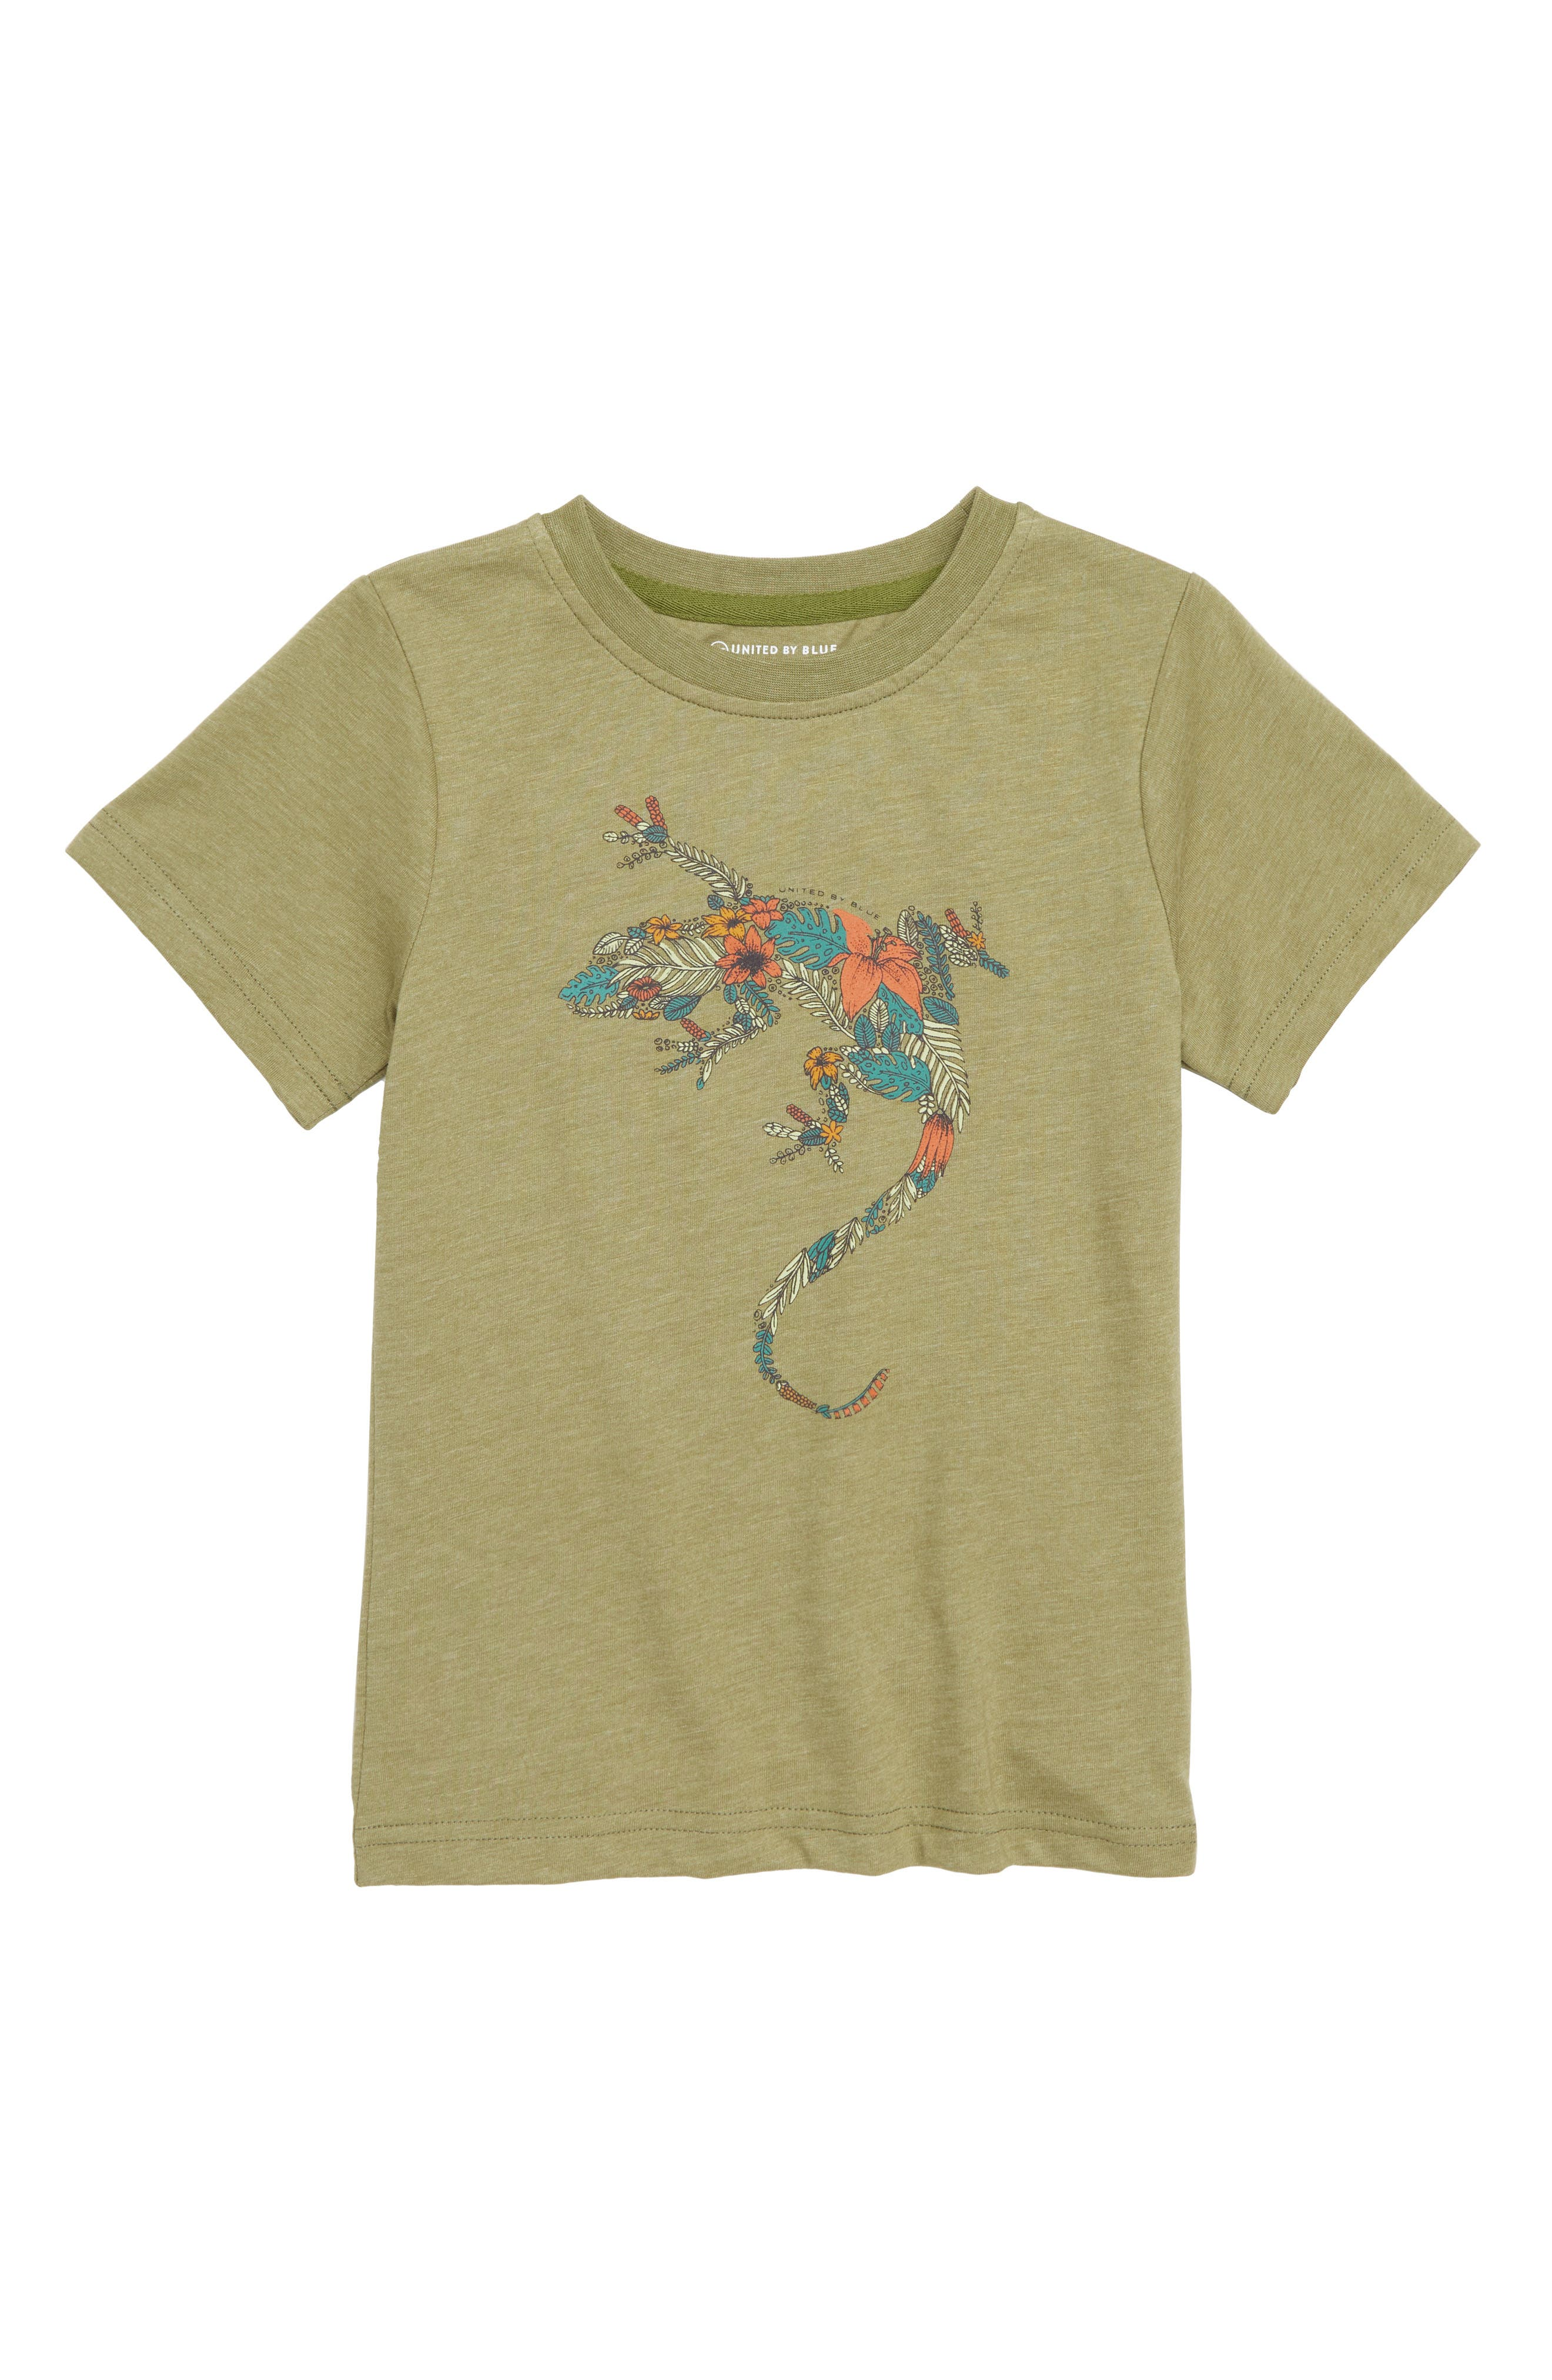 Wild Gecko T-Shirt,                         Main,                         color, OLIVE